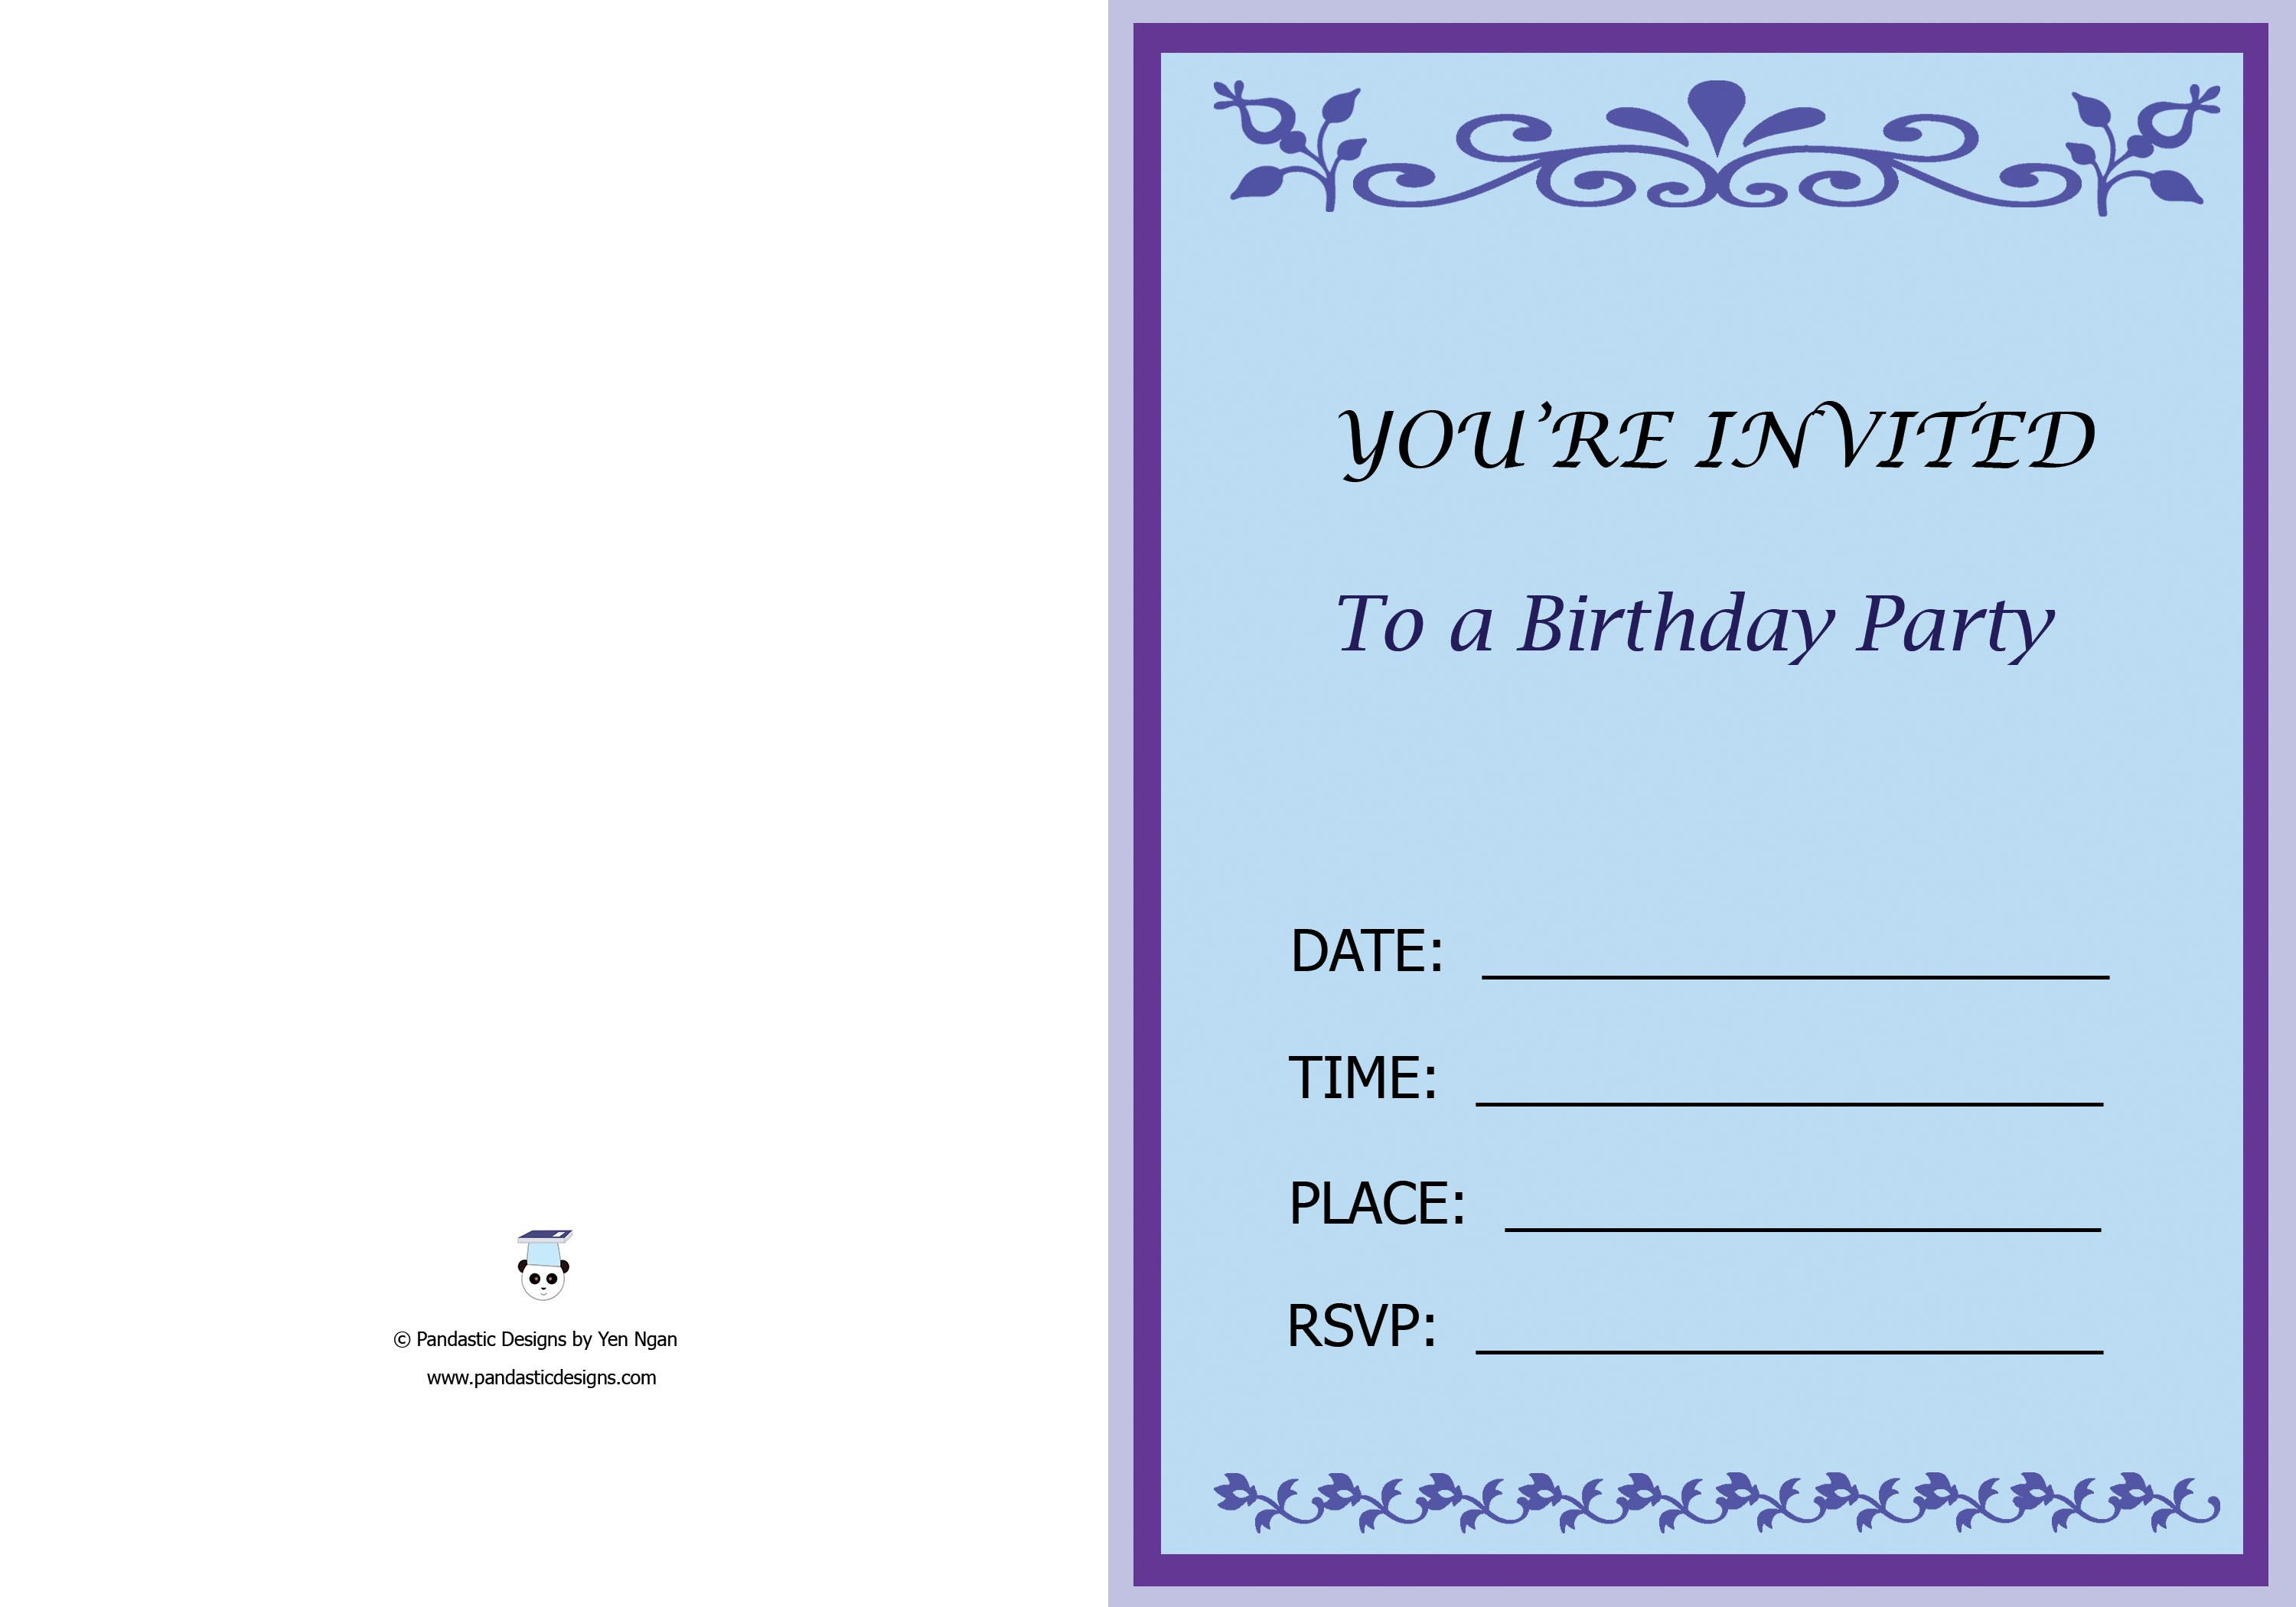 01 Birthday Party Invitation Card Pandastic Designs